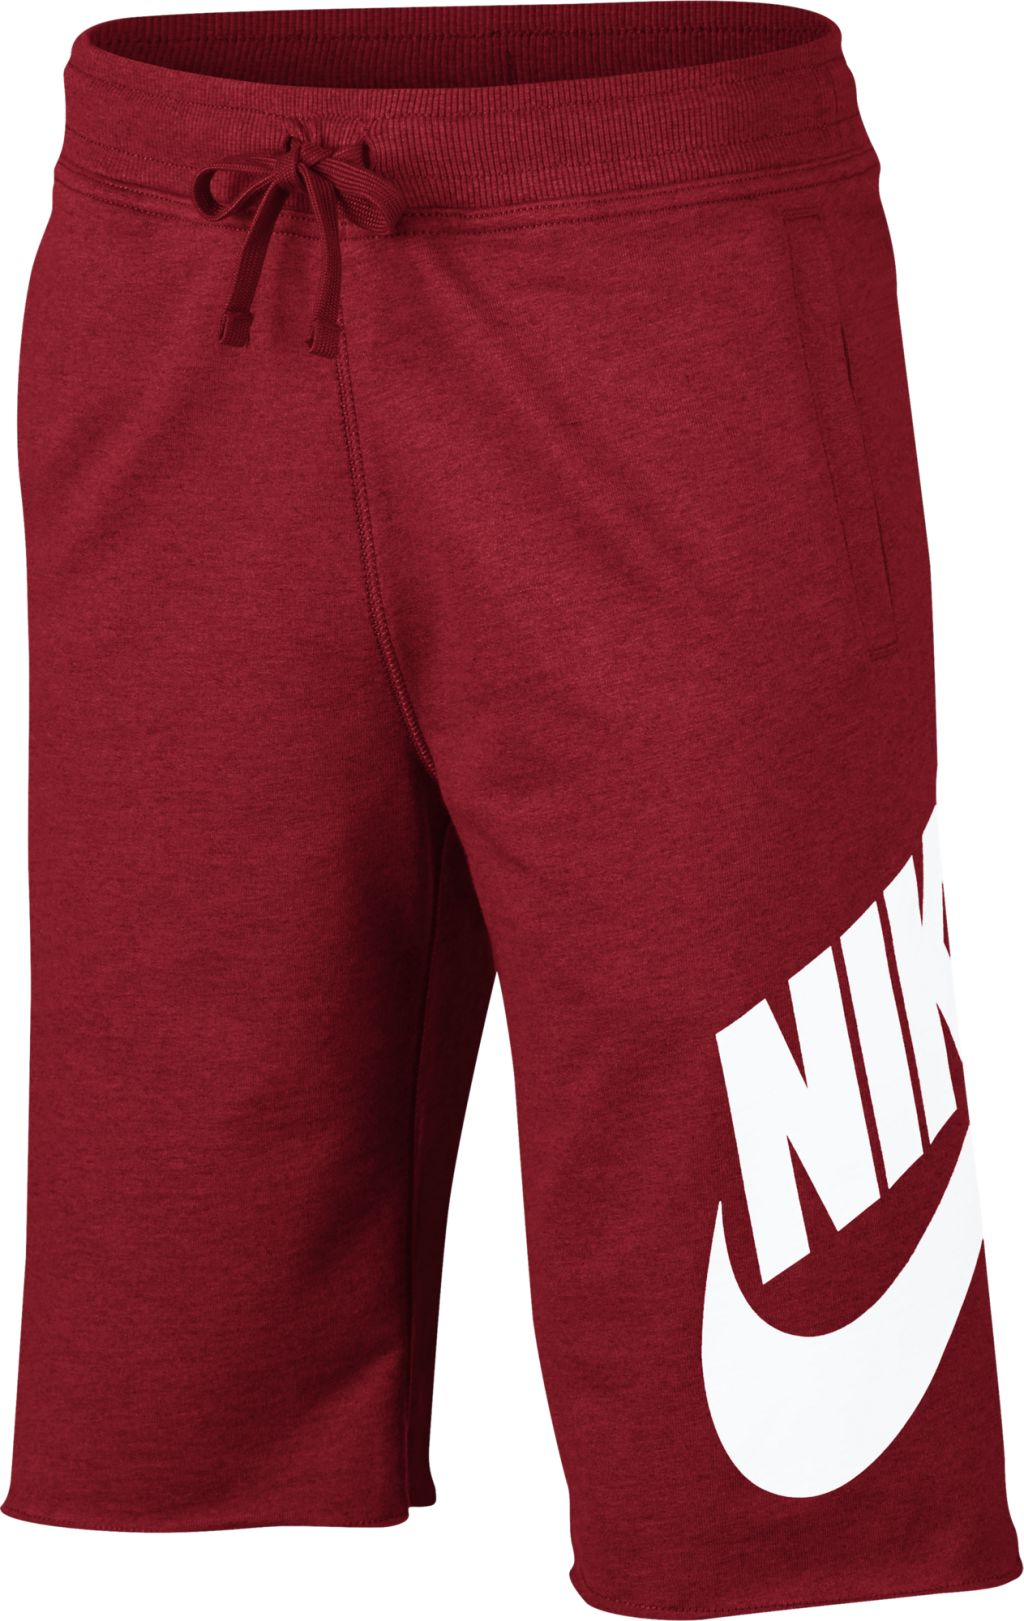 Nike Sportswear Short Jr